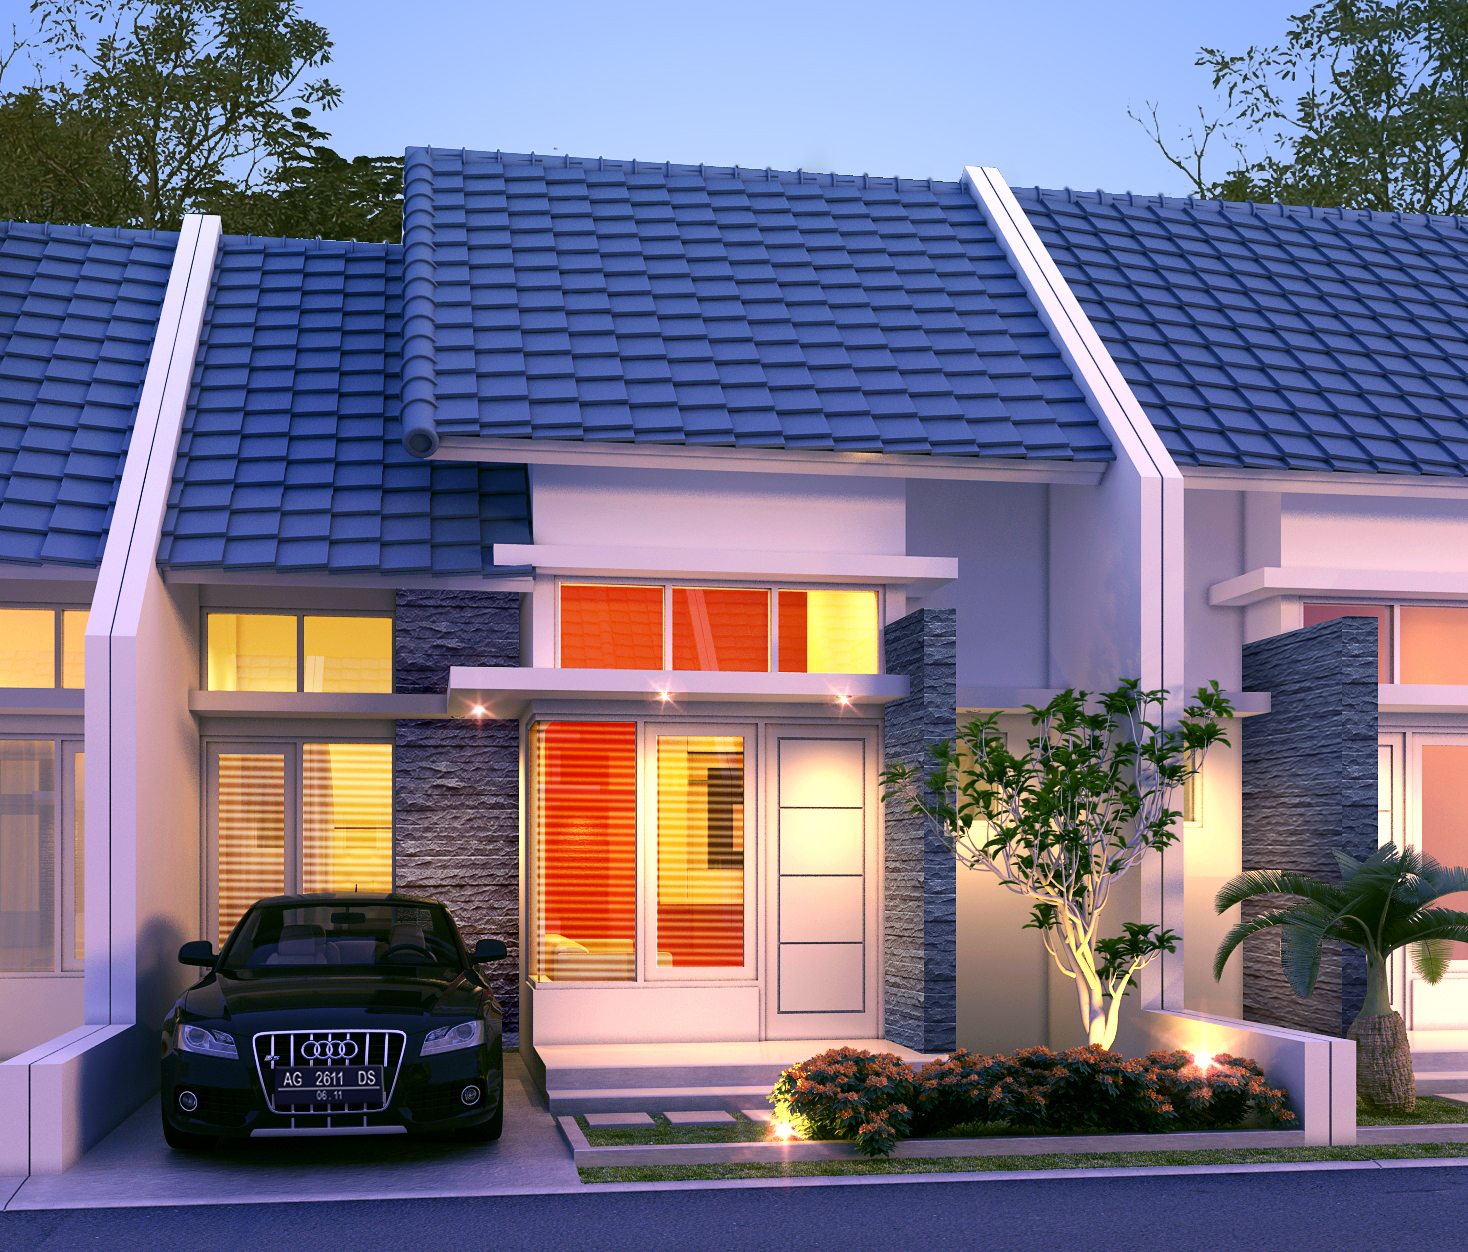 Model rumah minimalis type 36 terbaru 2014 auto design tech for Design rumah mimimalis modern